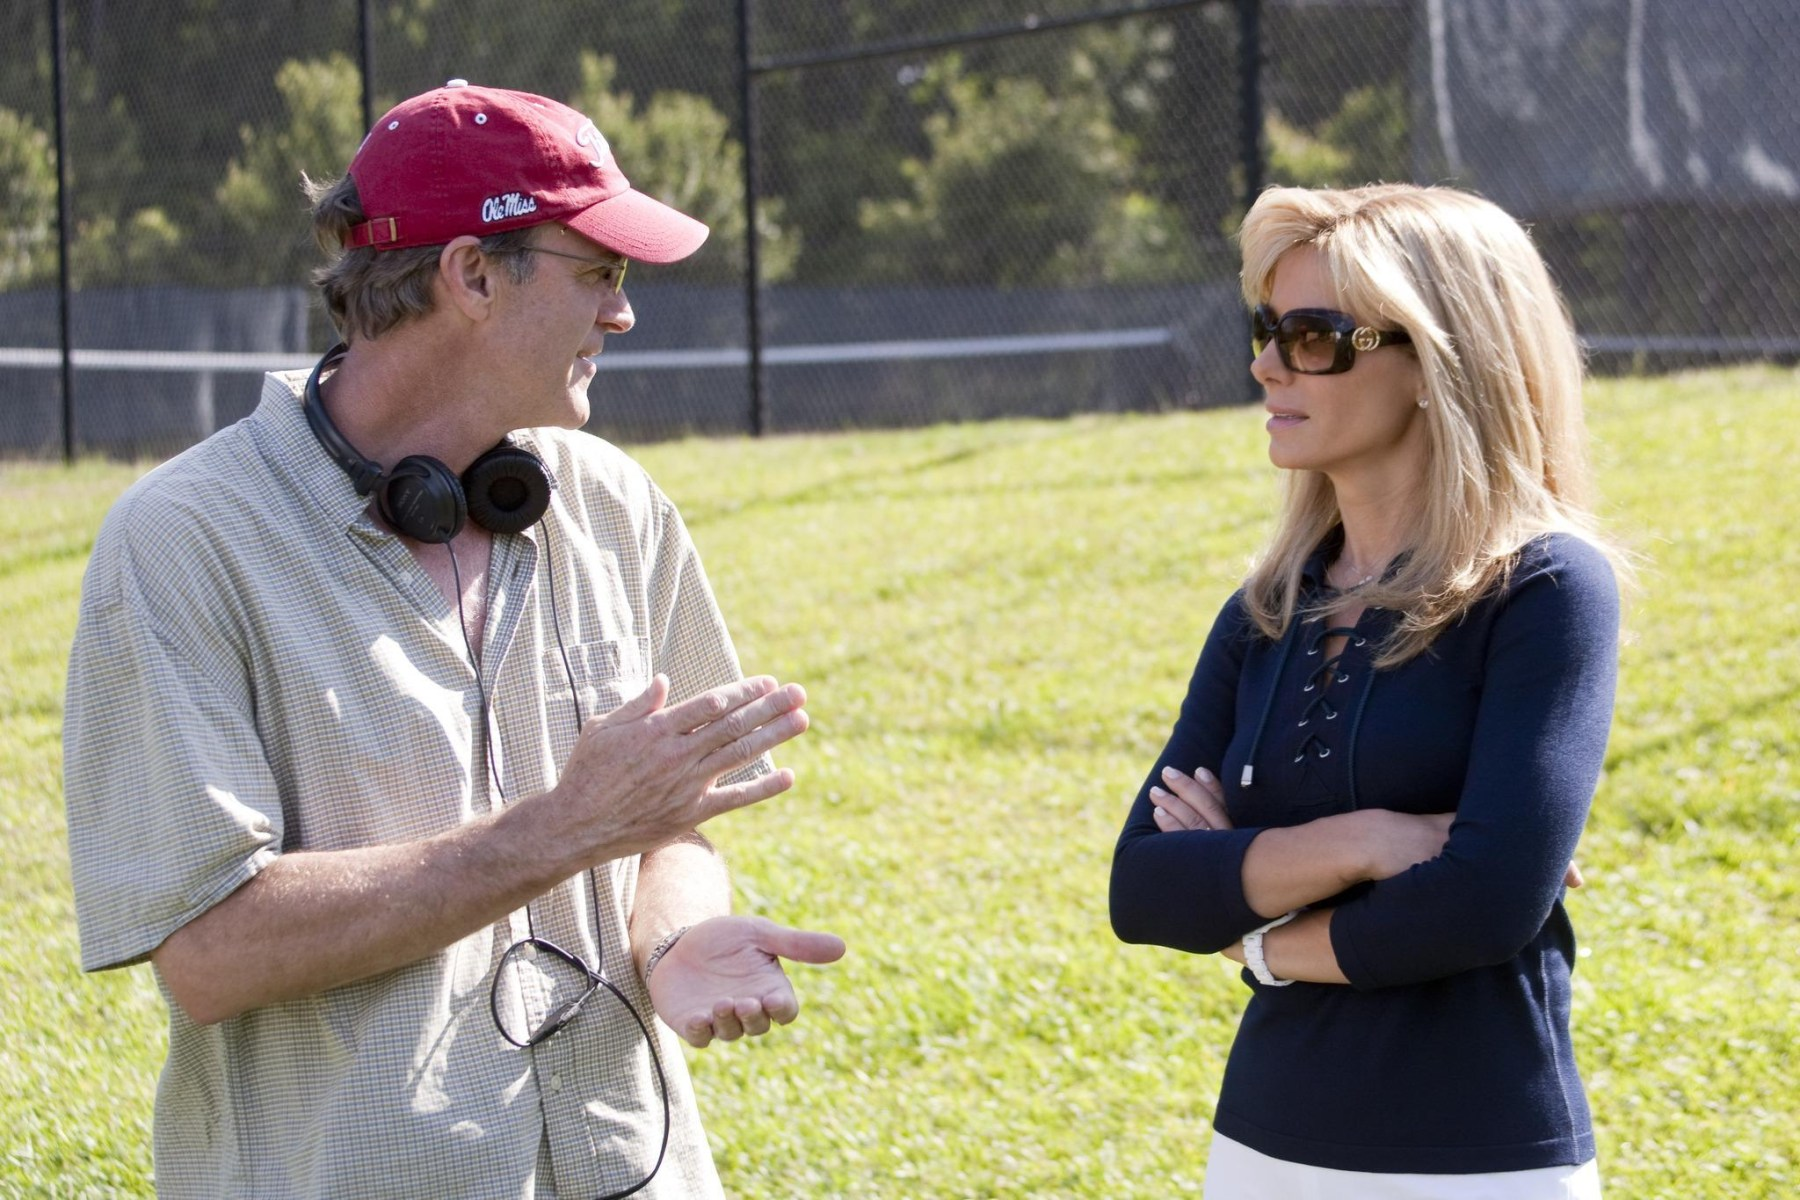 On Location : The Blind Side (2009) Behind the Scenes